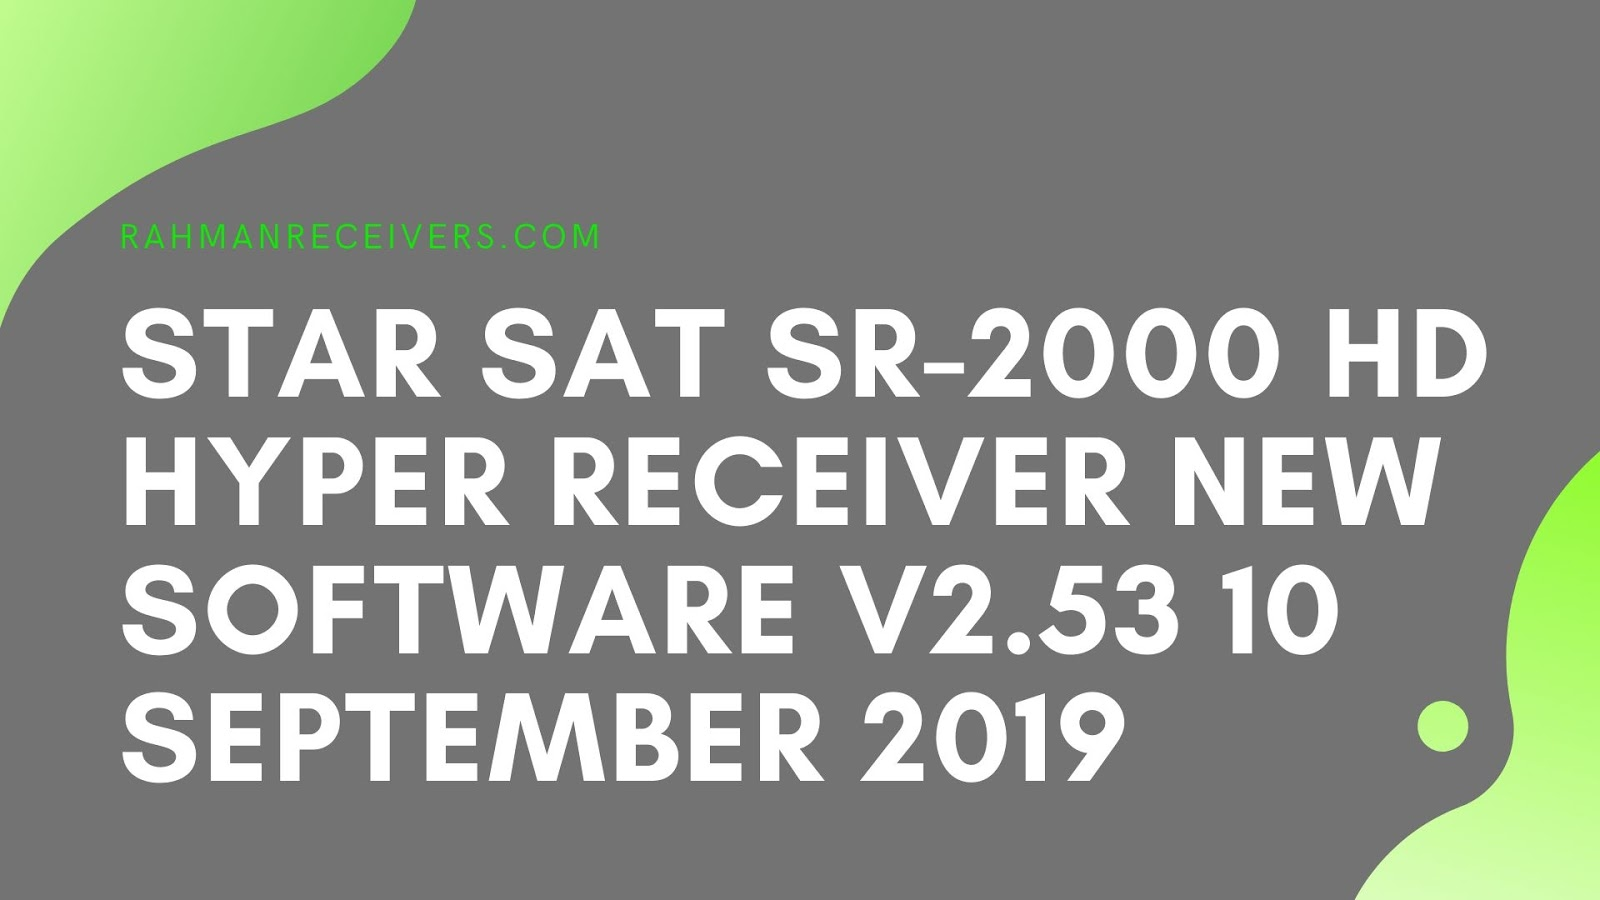 STAR SAT SR-2000 HD HYPER RECEIVER NEW SOFTWARE V2.53 10 SEPTEMBER 2019